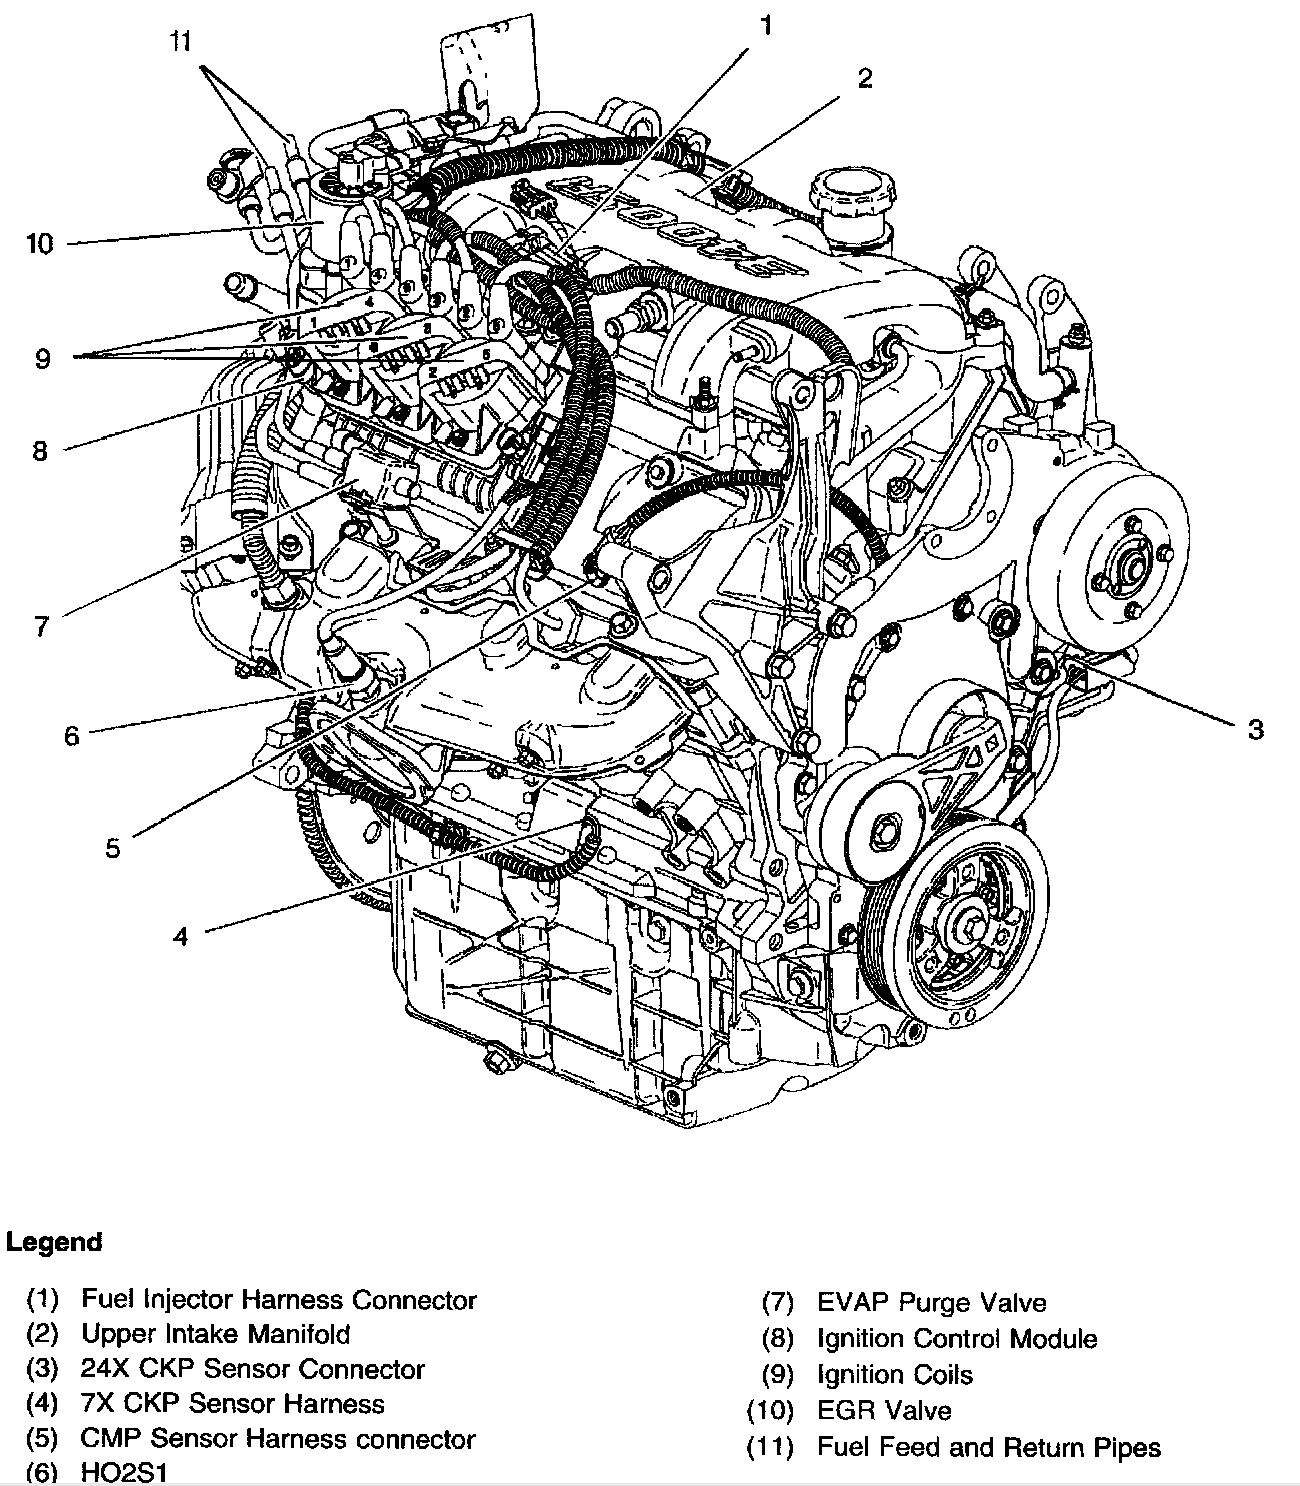 Malibu V6 Engine Diagram